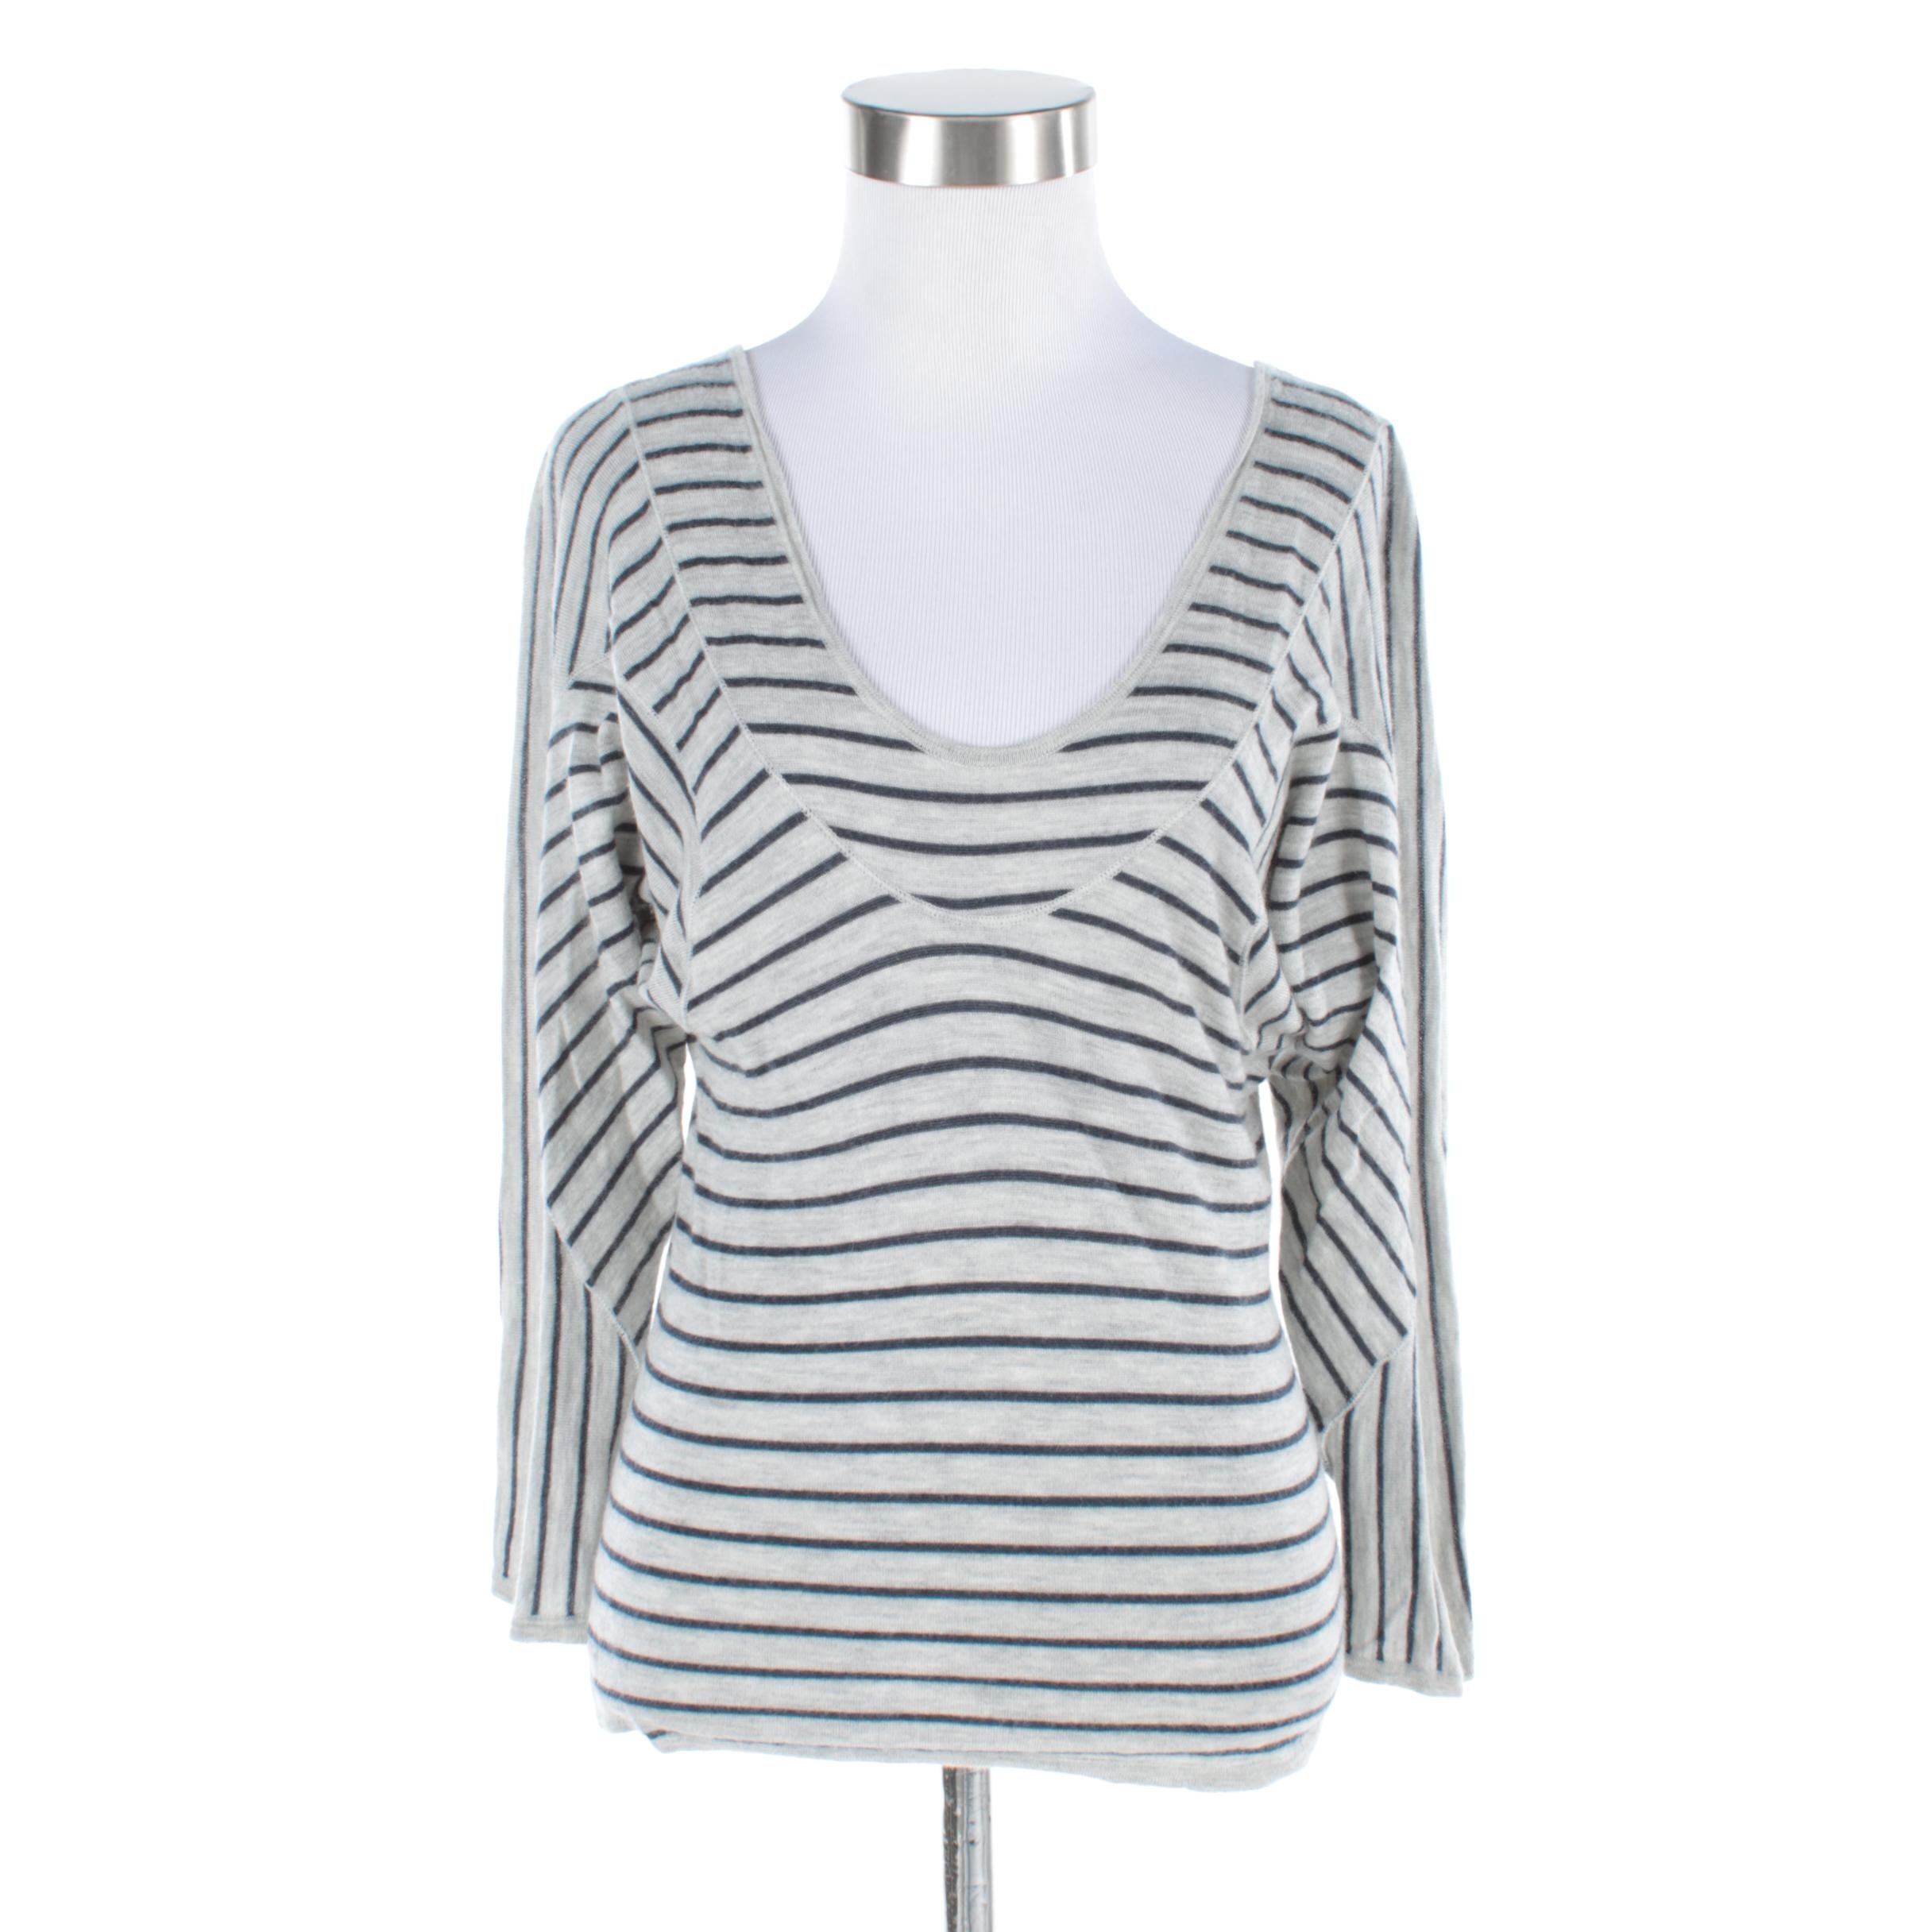 Marni Cashmere Dolman Shirt with Scooped Neckline